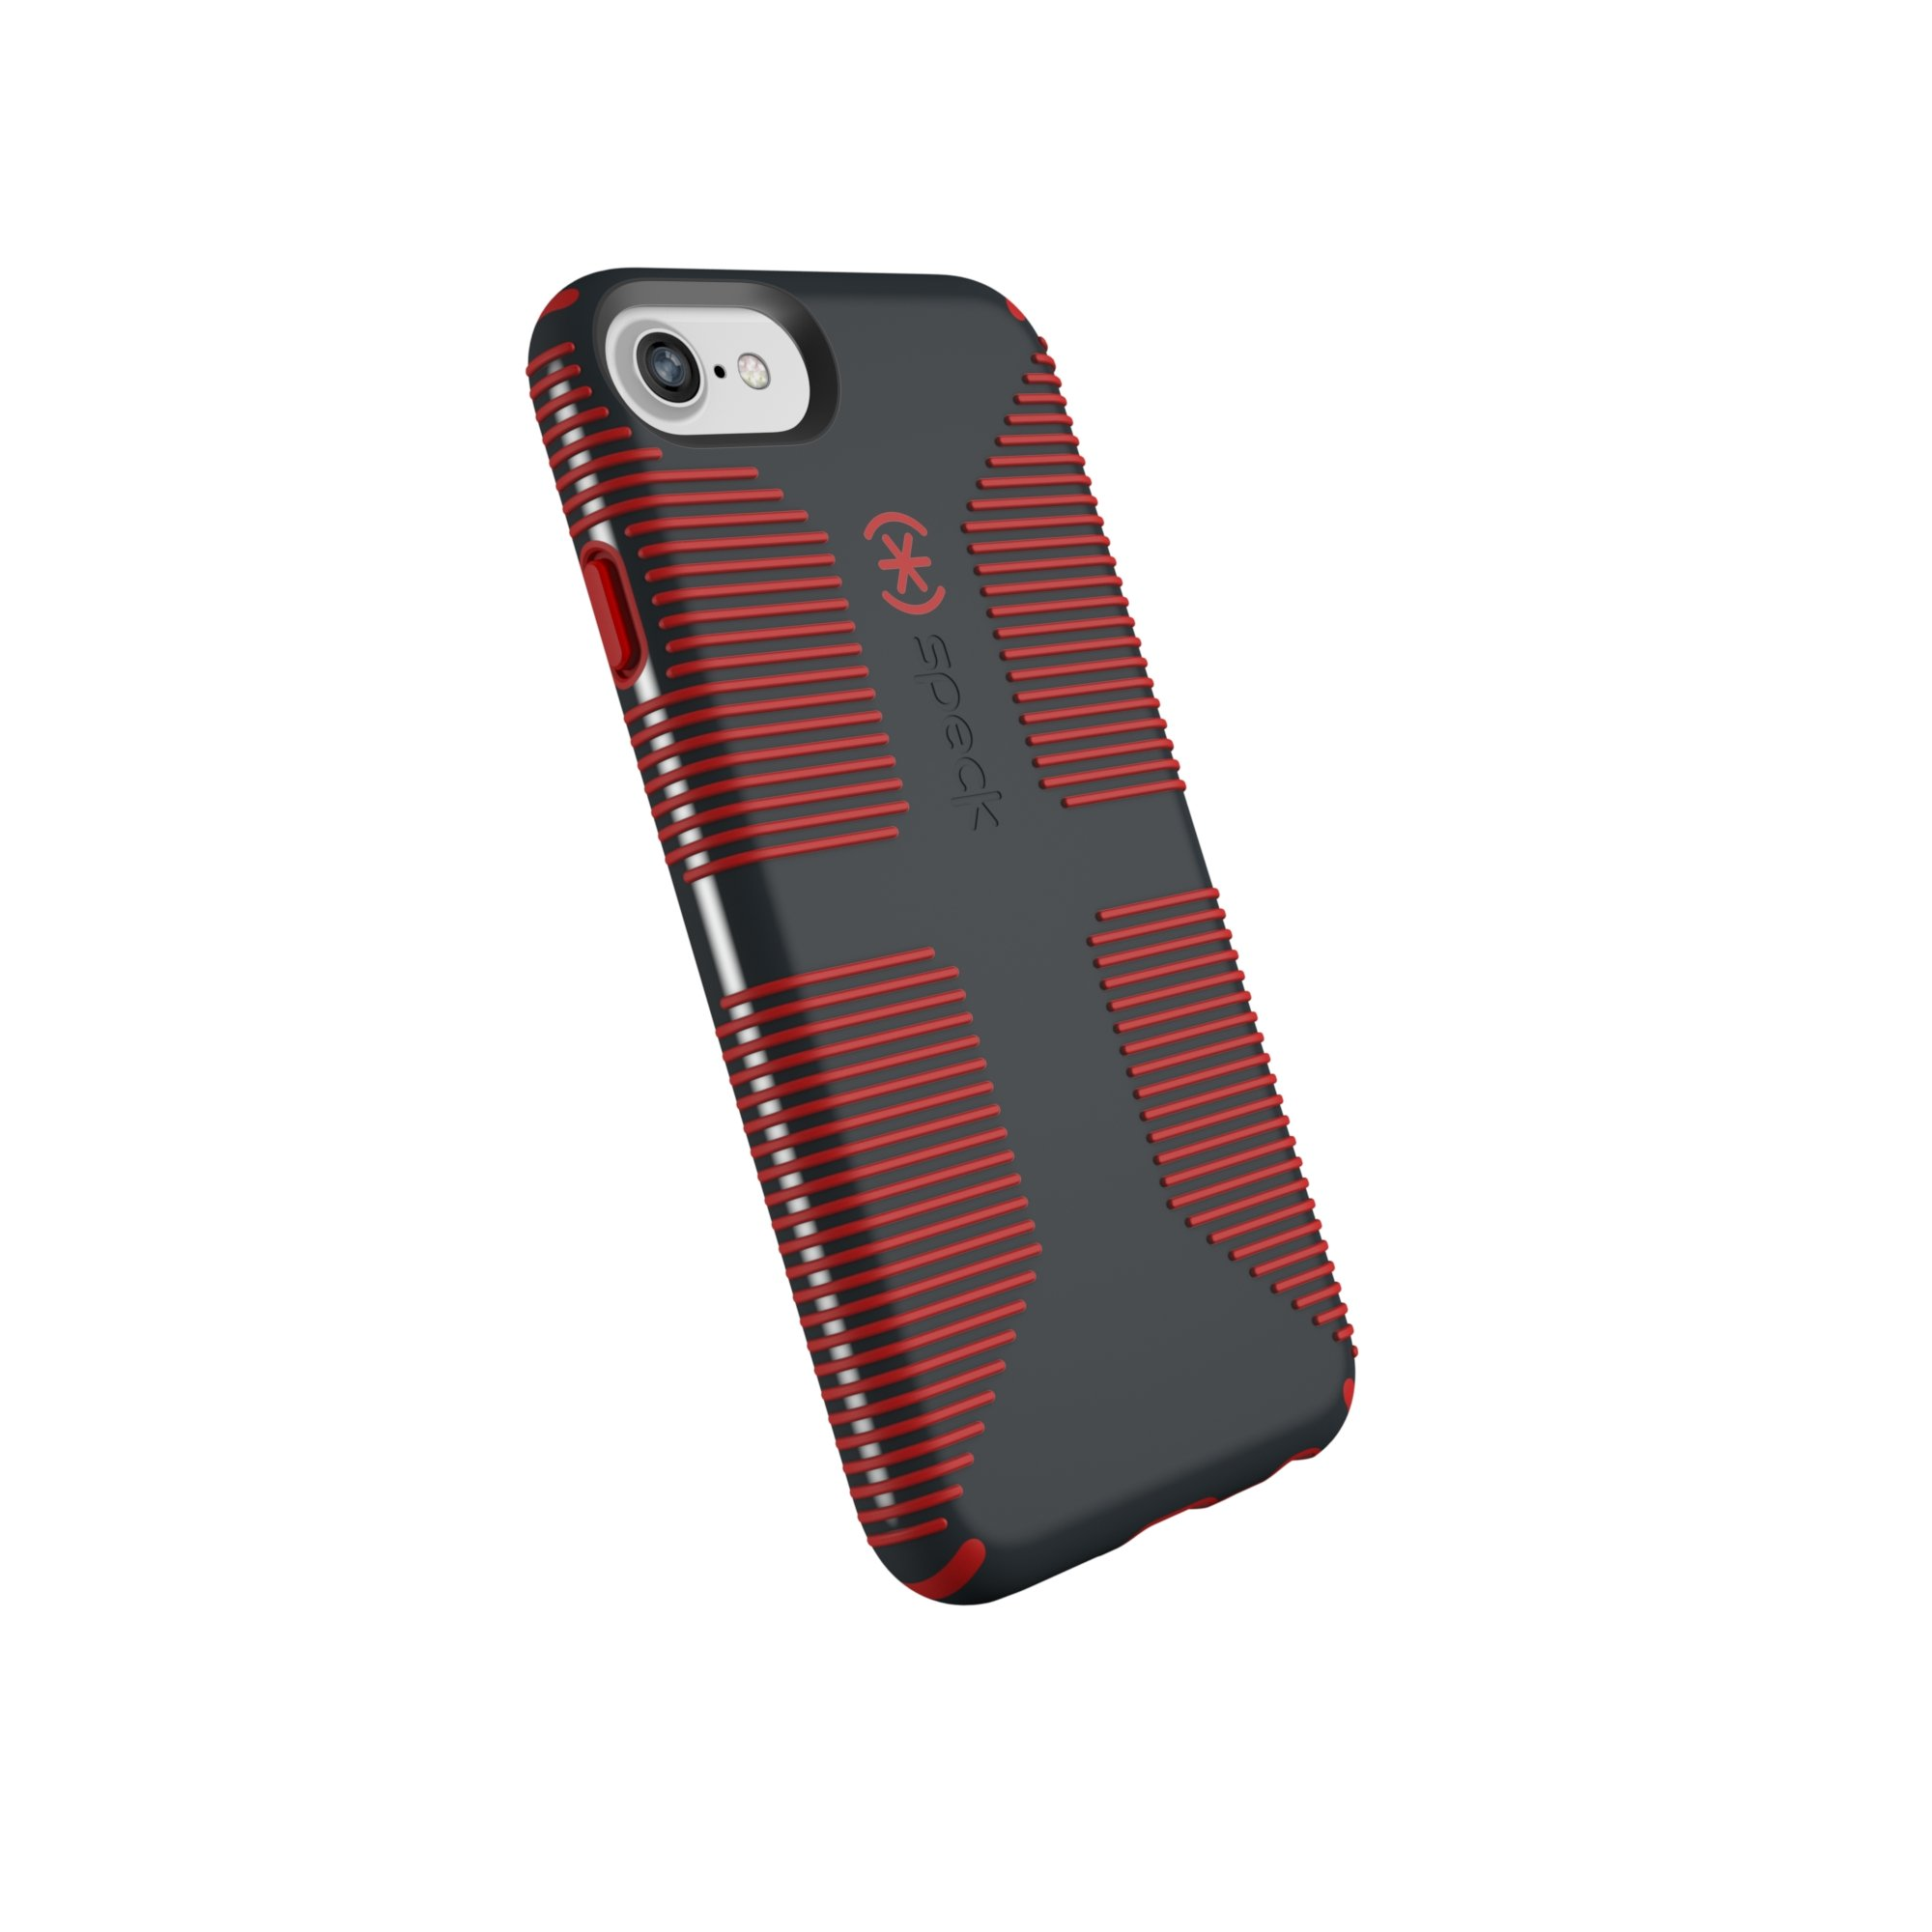 Speck Products CandyShell Grip Cell Phone Case for iPhone 8/7/6S/6 - Charcoal Grey/Dark Poppy Red by Speck